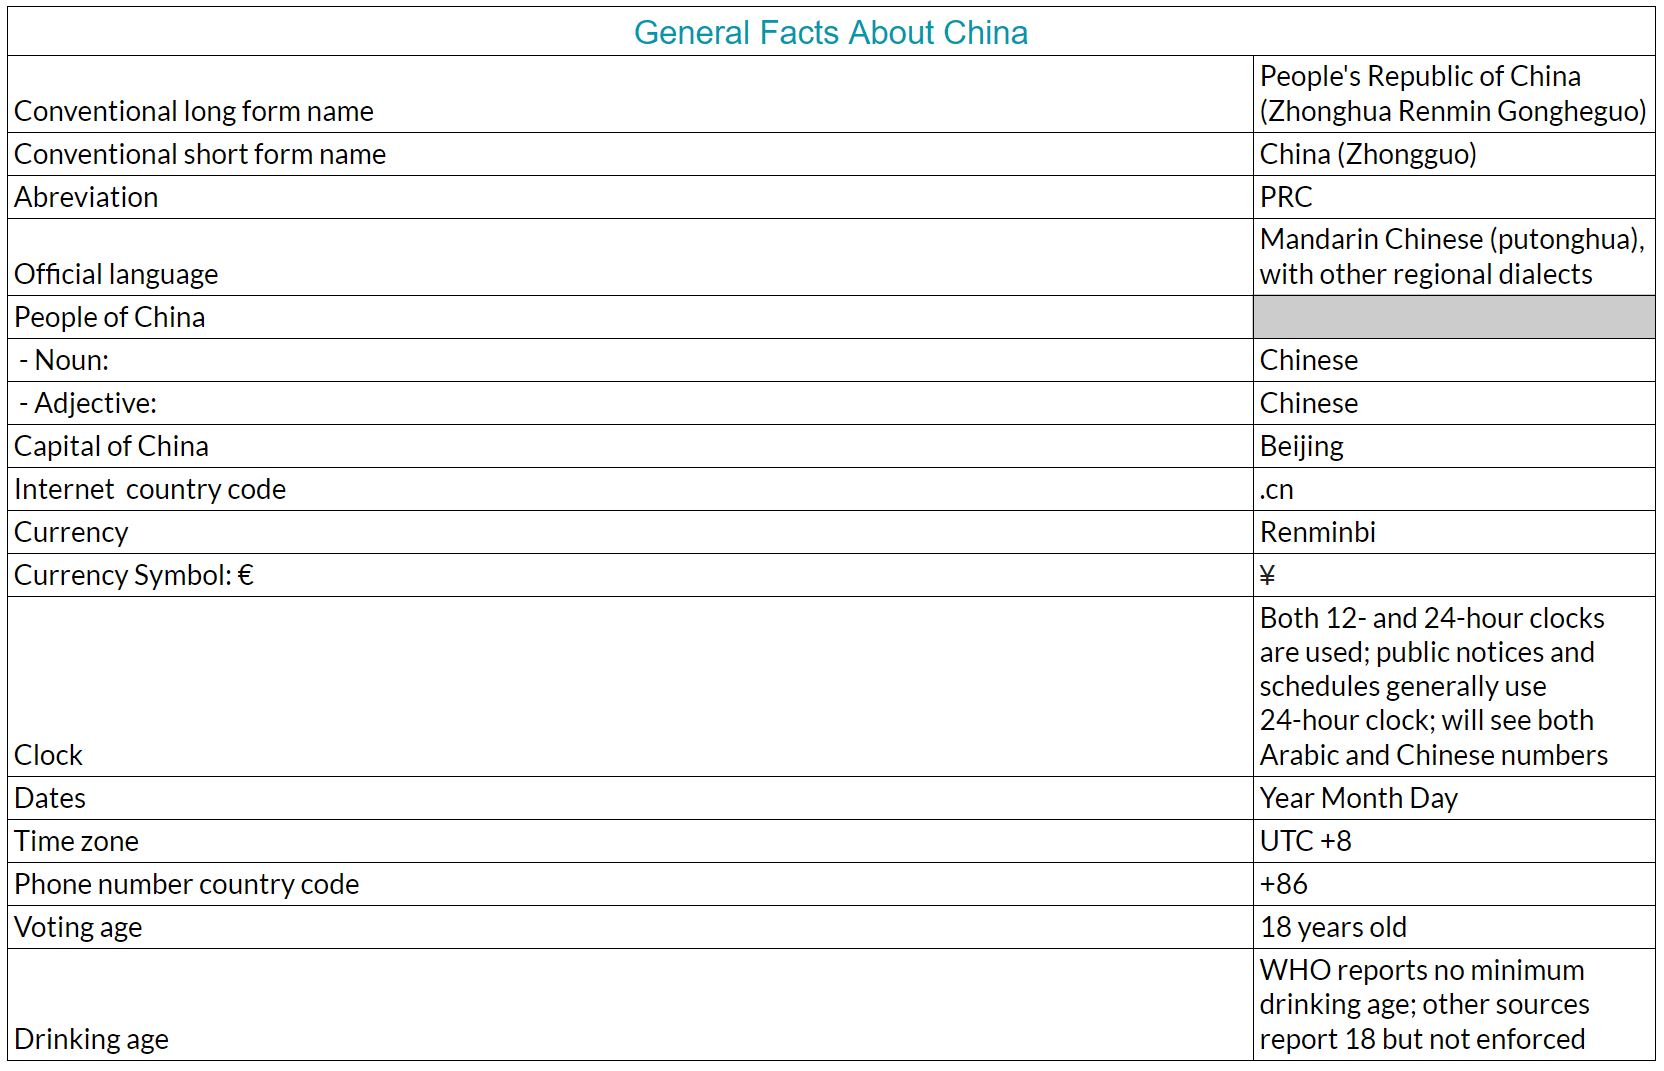 General facts and figures about China